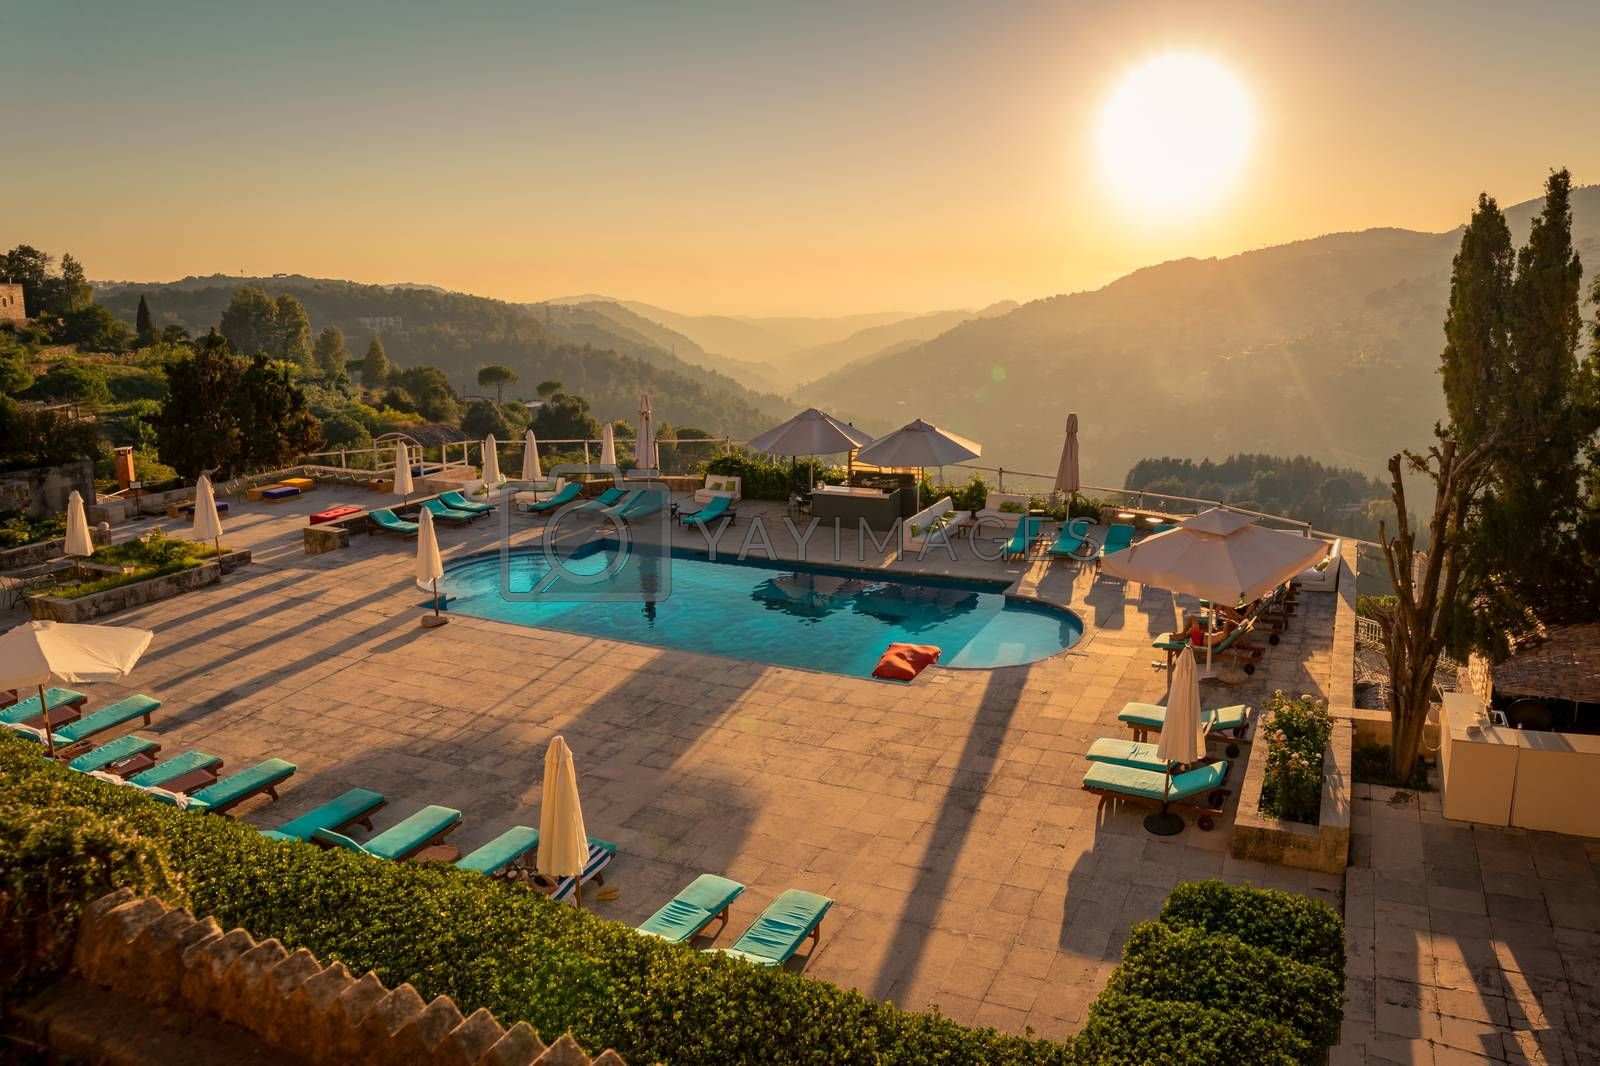 Traveling Lebanon. Pool with Refreshing Water in the Mild Sunset Light. Beautiful Resort in the Heart of the Mountains.